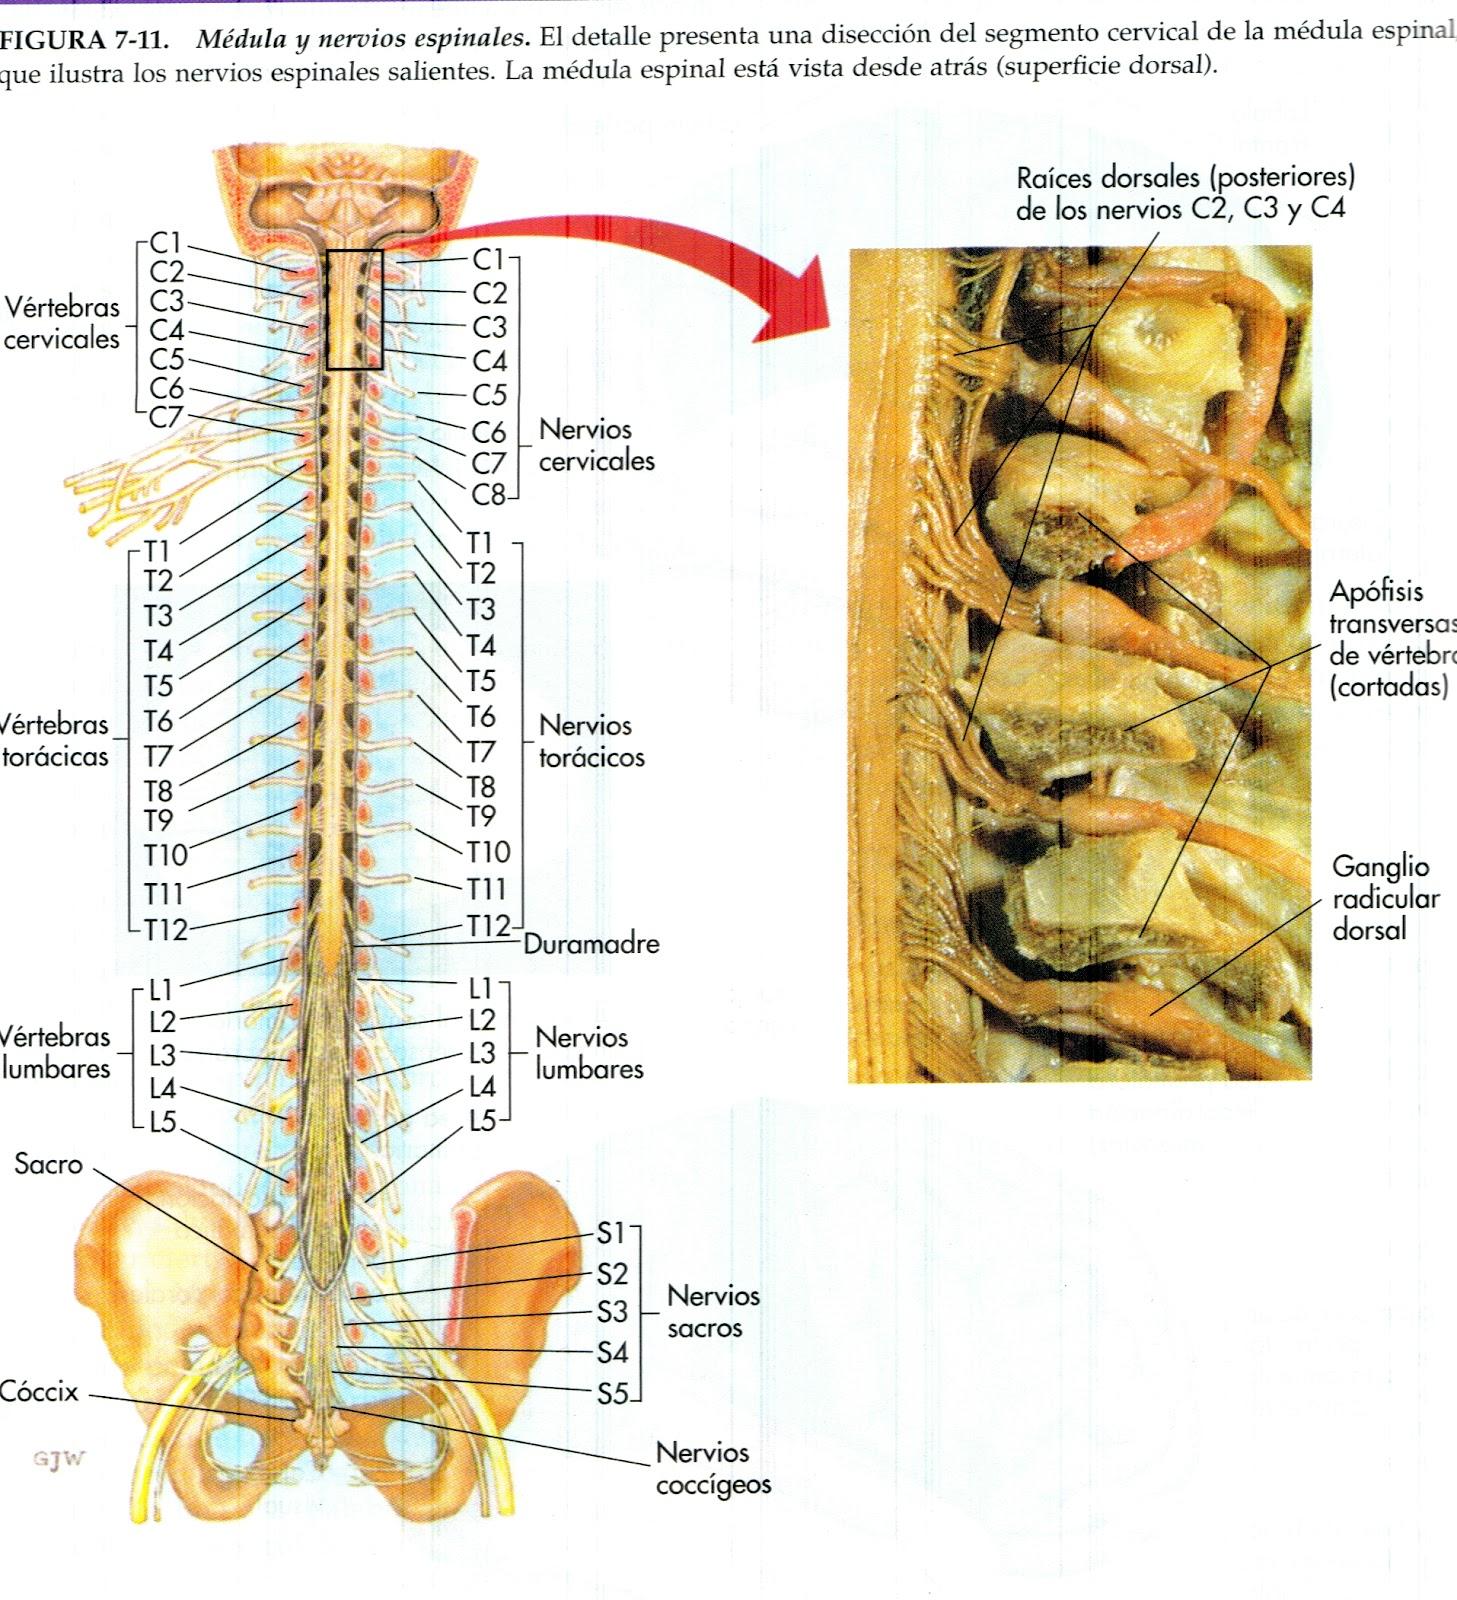 The Spinal Cord The Spinal Cord Function In The Nervous